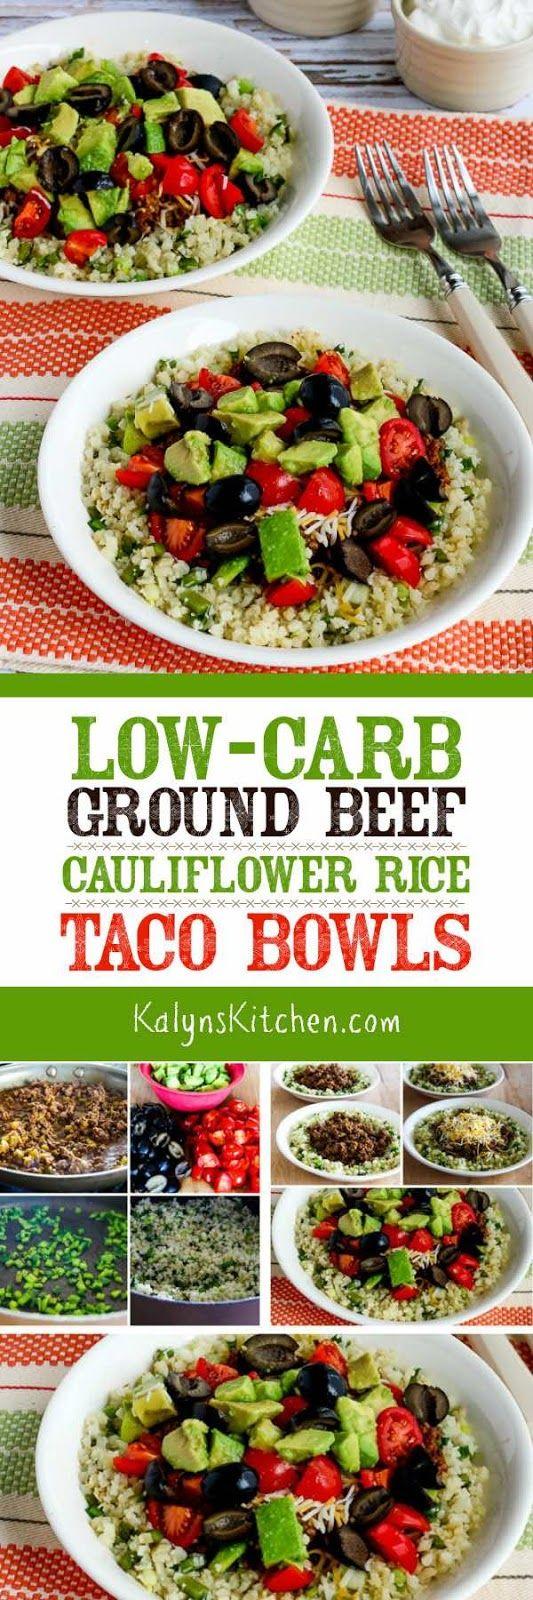 "We used frozen cauliflower rice to make these Low-Carb Ground Beef Cauliflower Rice Taco Bowls a quick and easy meal, but use fresh cauliflower grated into ""rice"" if you prefer. These tasty taco bowls are also Keto, low-glycemic,  gluten-free and South Beach Diet Phase One and if you omit the cheese and the optional sour cream and use approved salsa, this tasty meal can be Paleo or Whole 30 approved. [found on KalynsKitchen.com]"